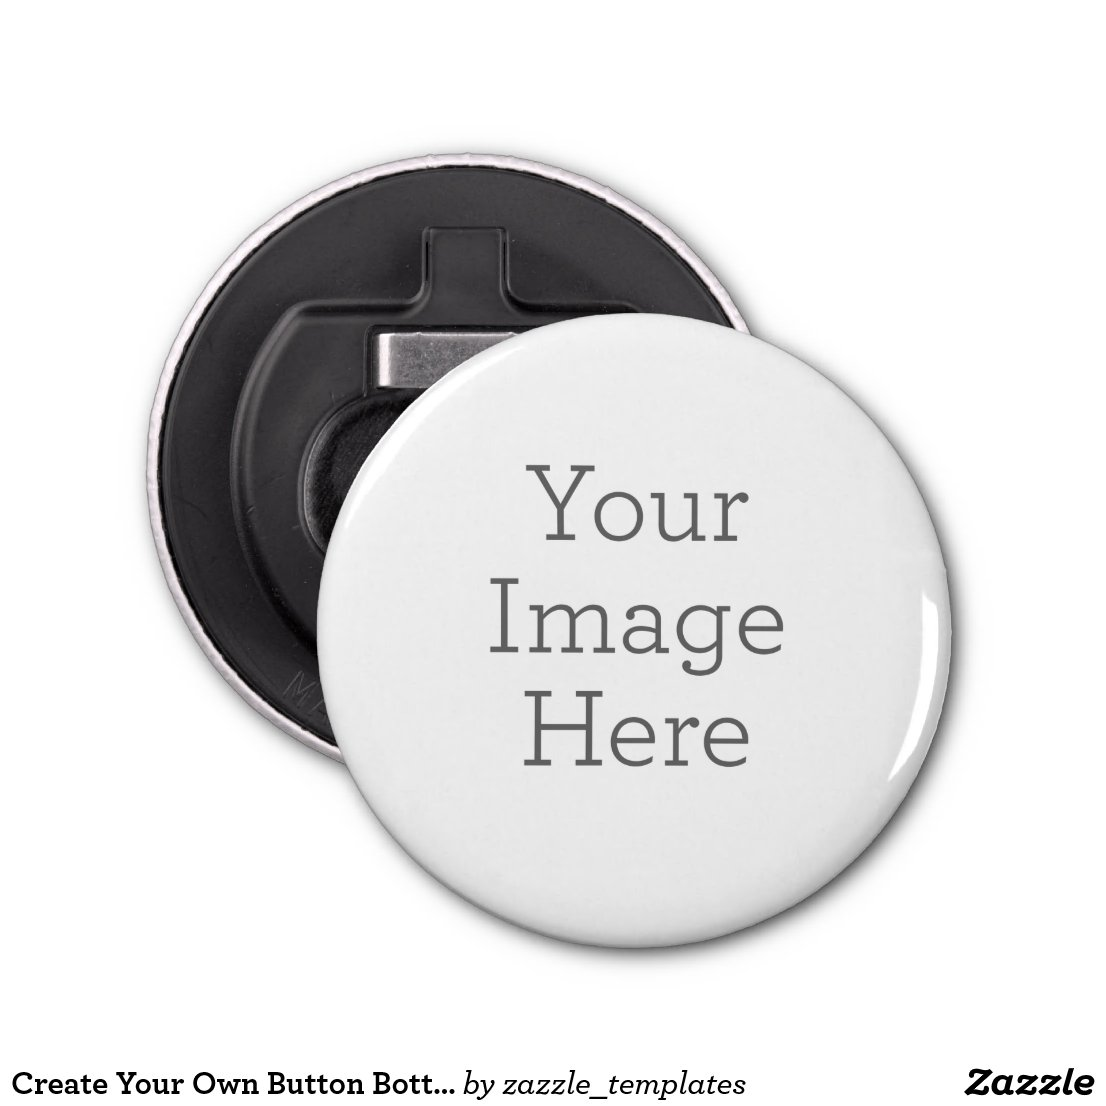 Create Your Own Button Bottle Opener